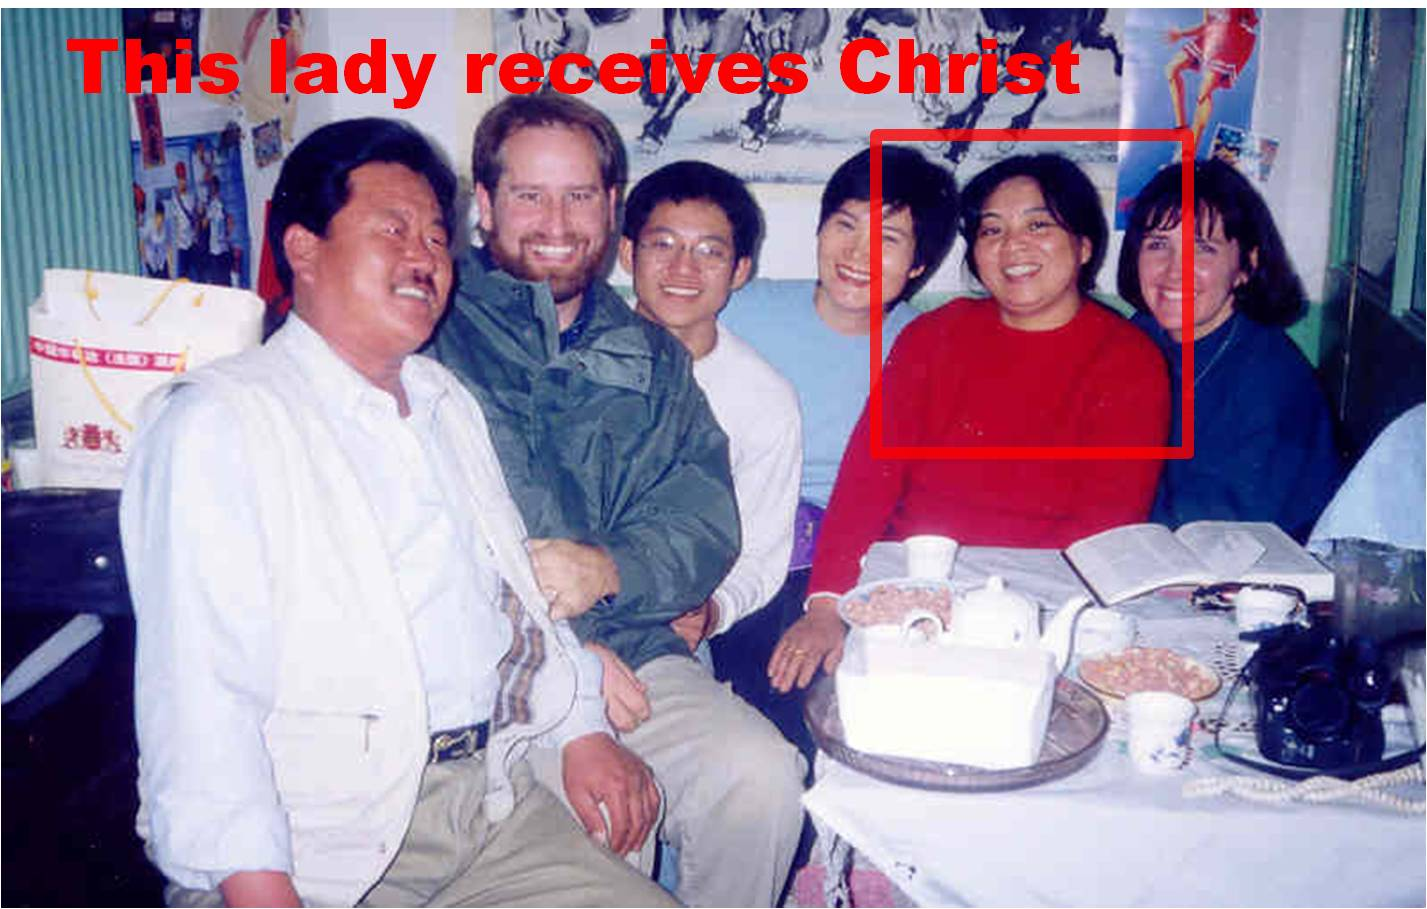 Pastors Steve and Melinda and Friends in Beijing China 1997